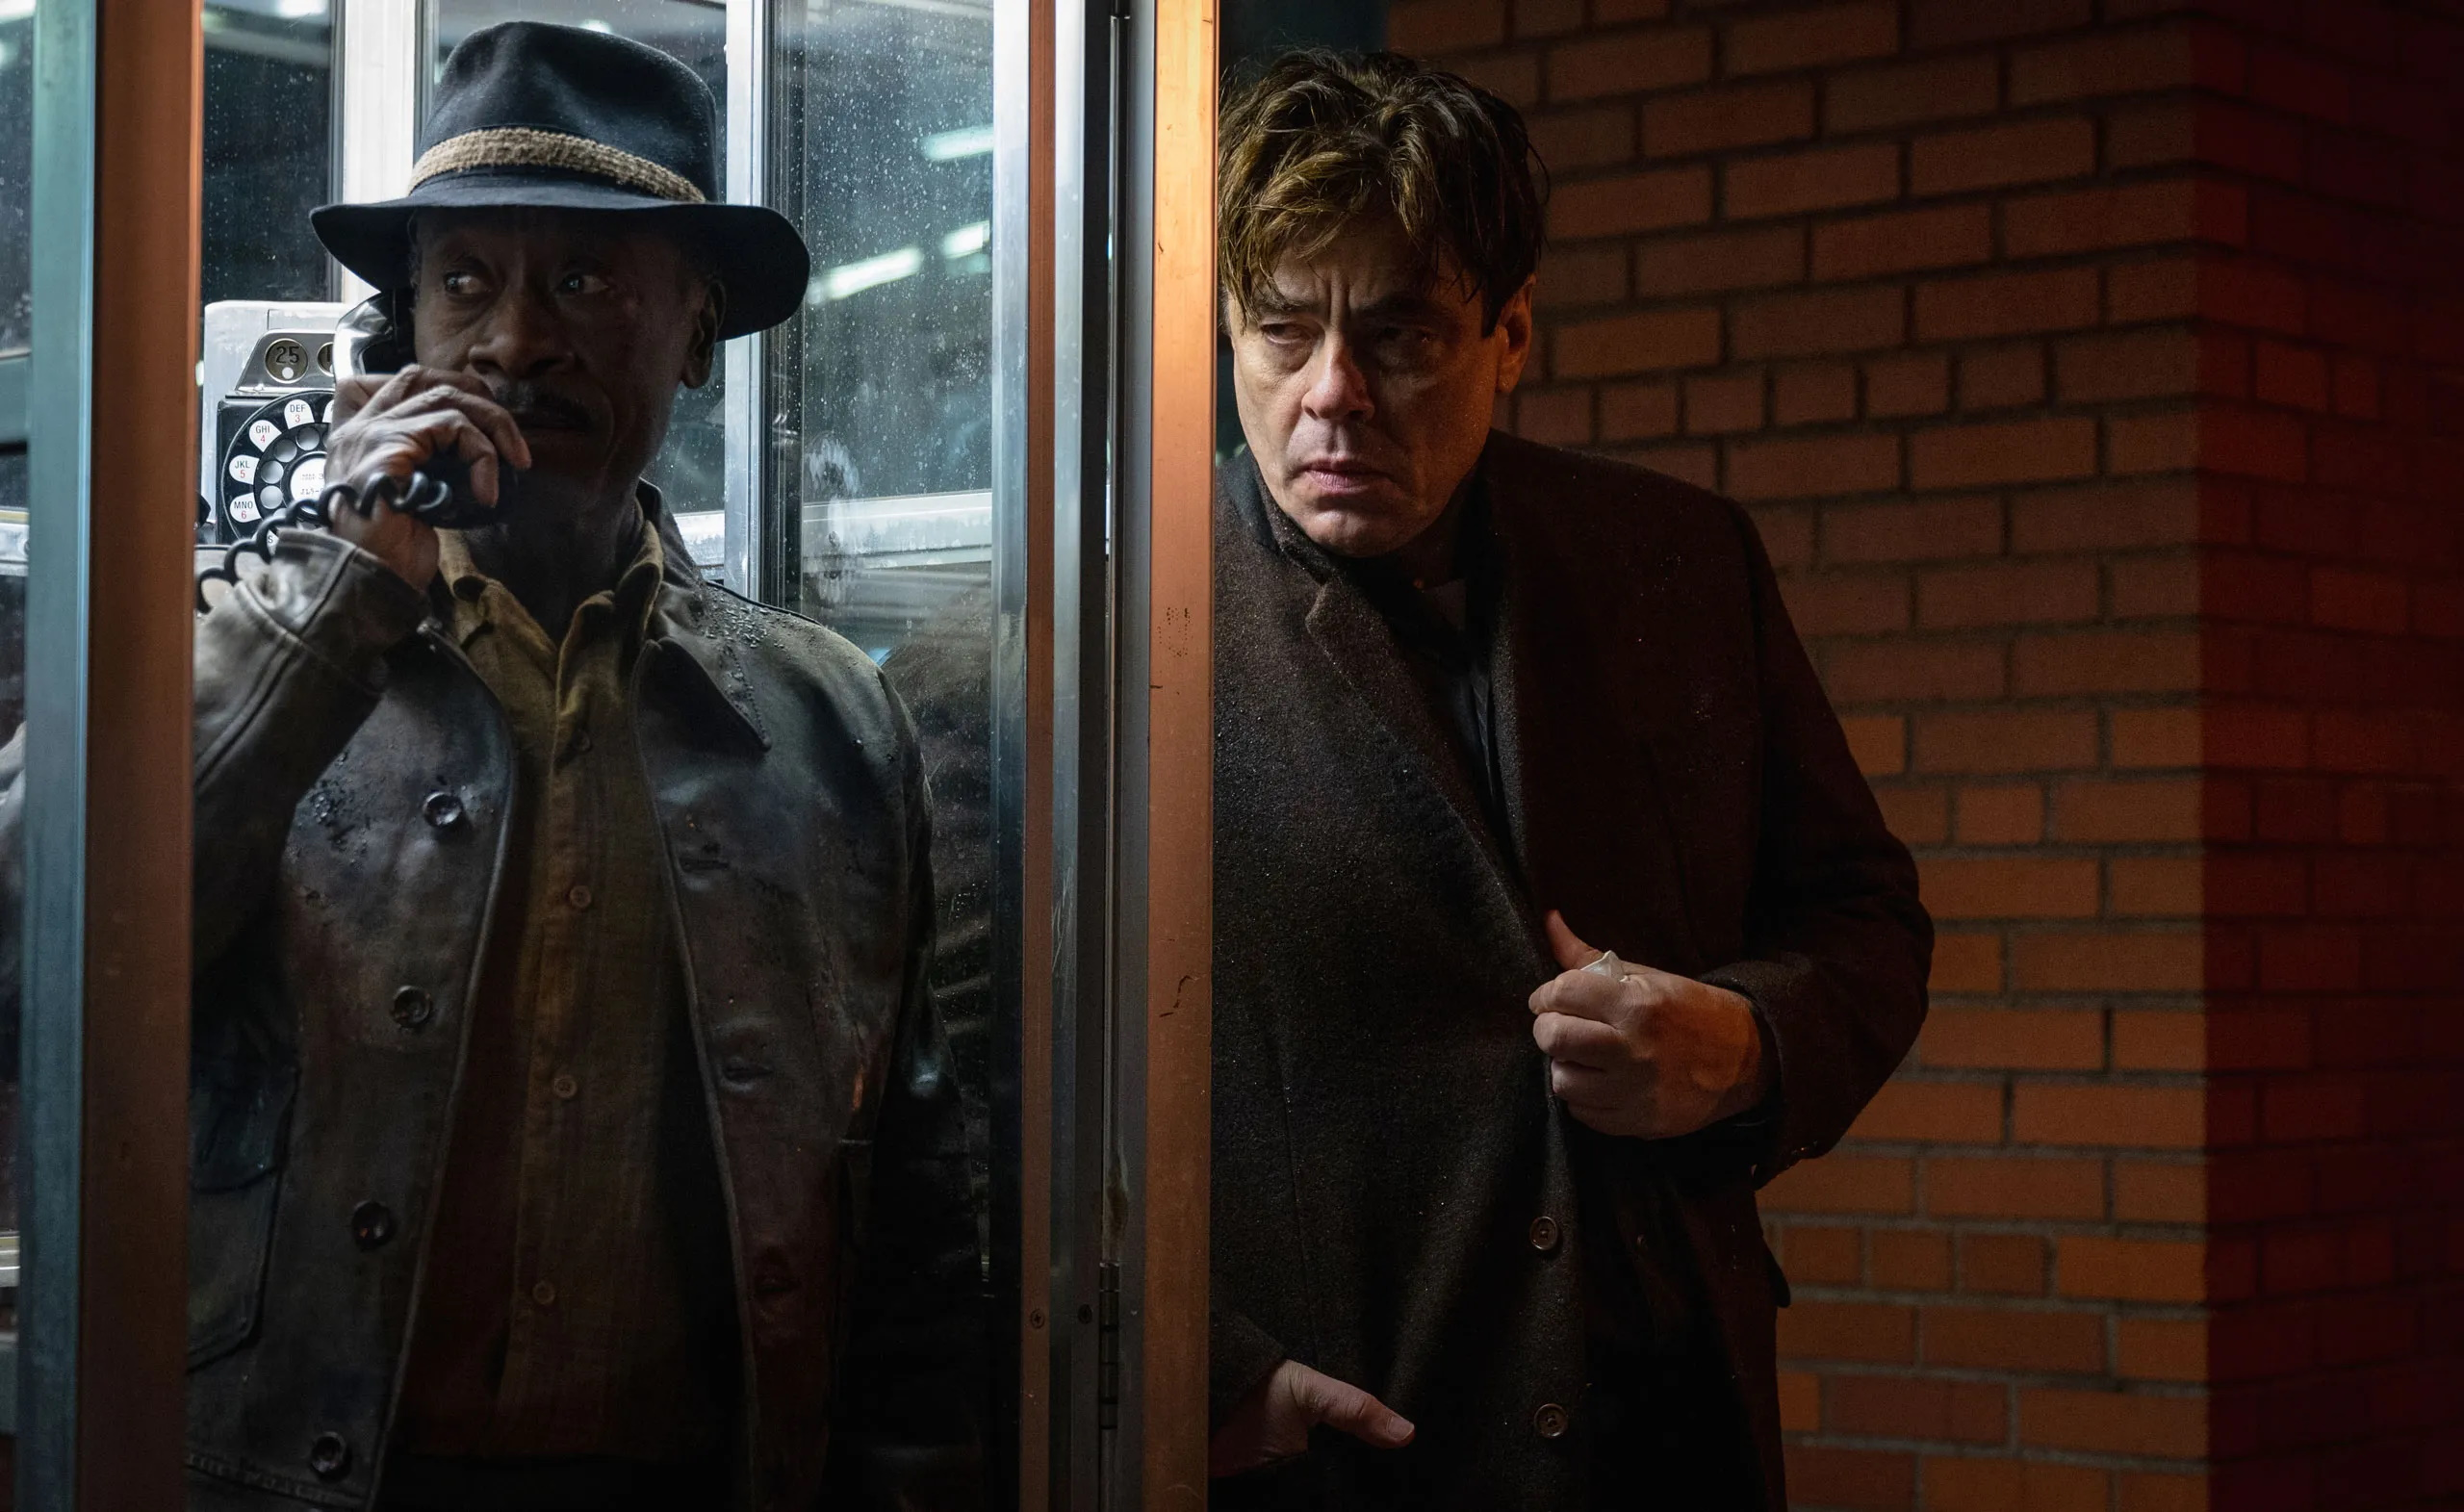 Don Cheadle talks on the phone from a phone book while Benicio del Toro waits anxiously outside it in the movie No Sudden Move